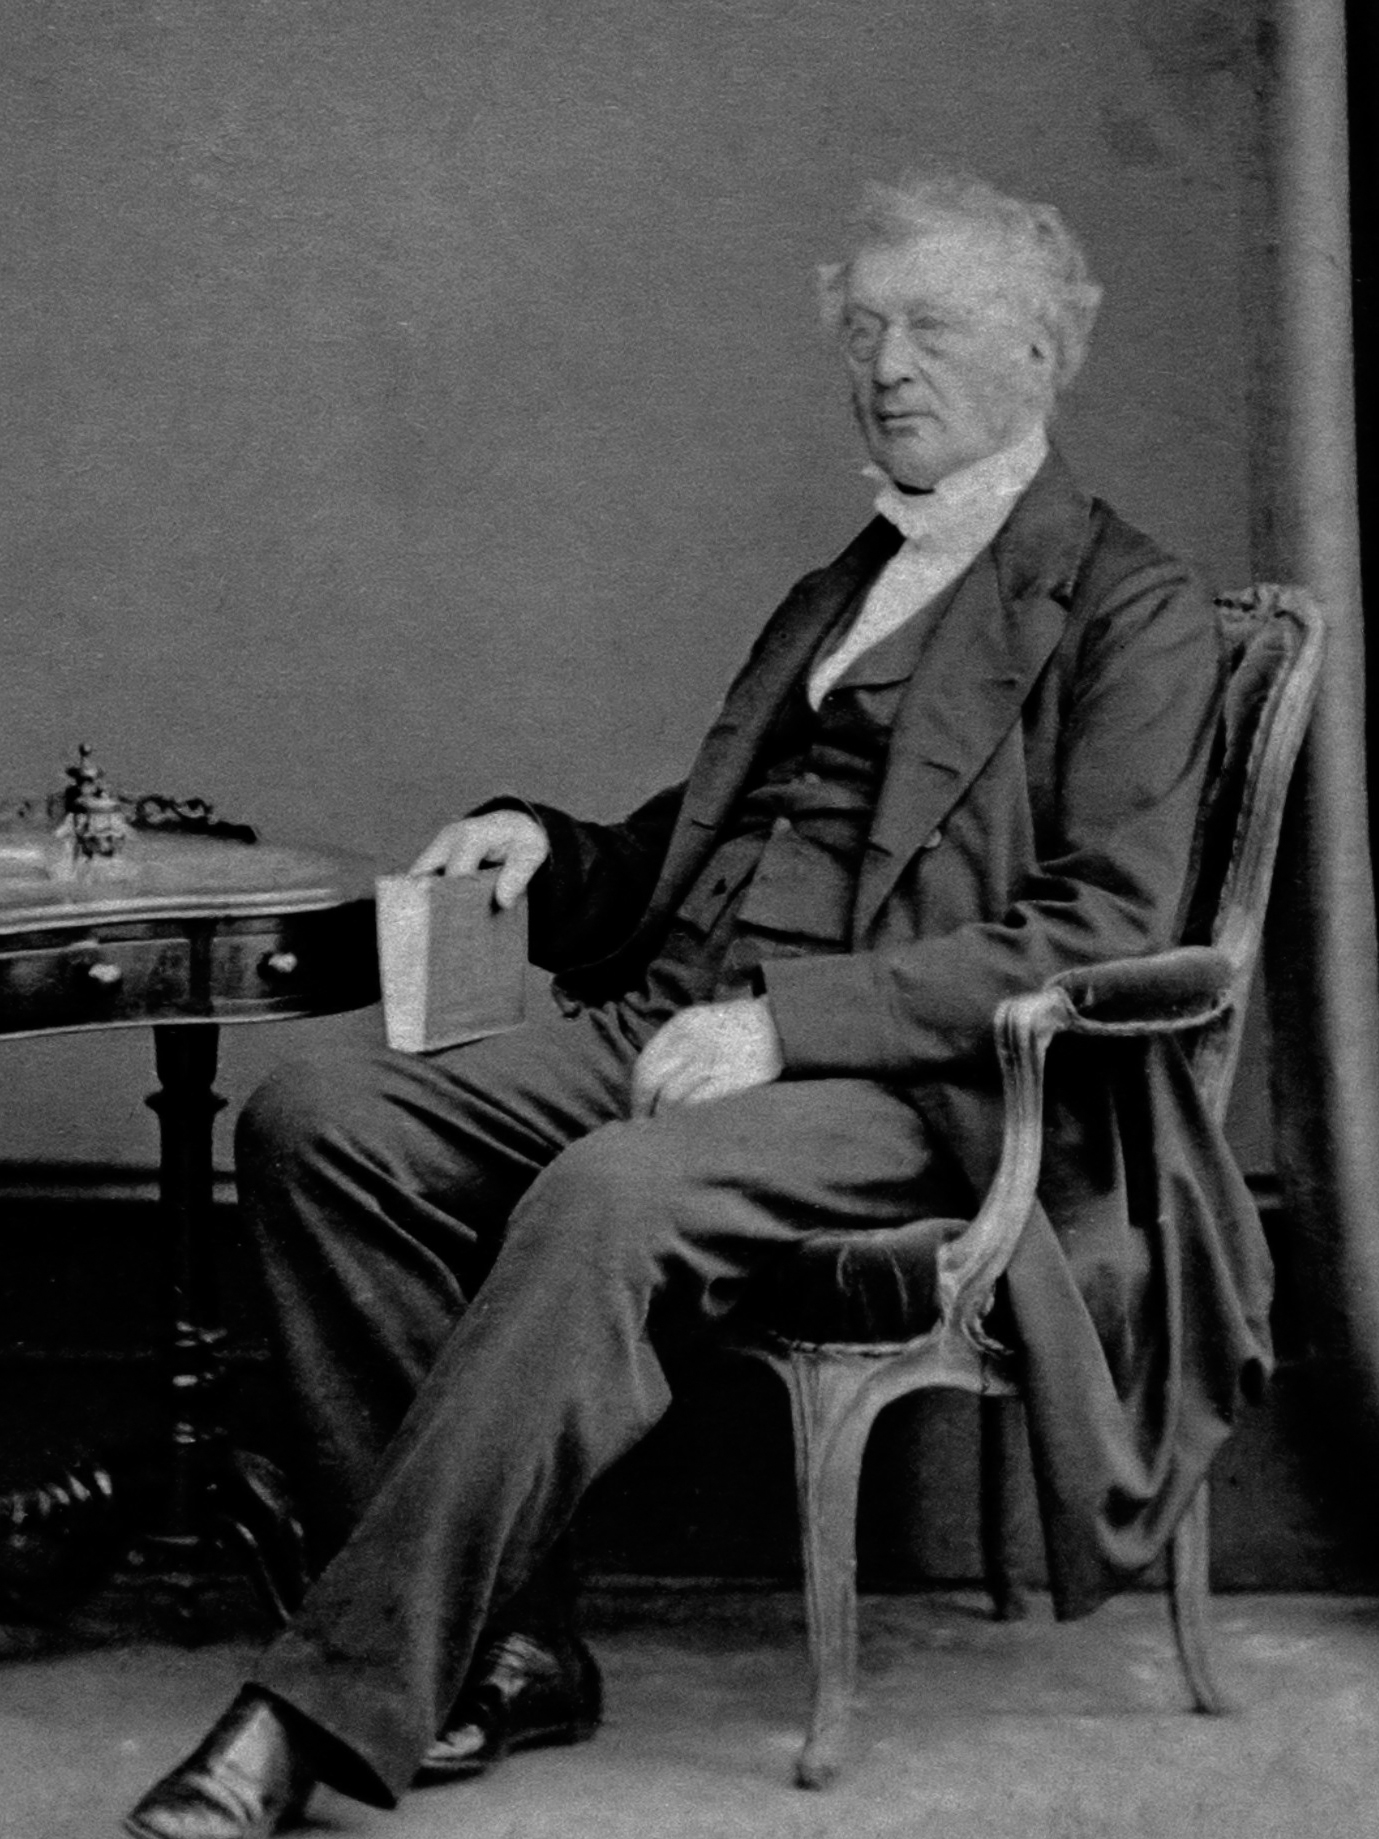 A portrait of James Edward Austen-Leigh taken in the 1860s